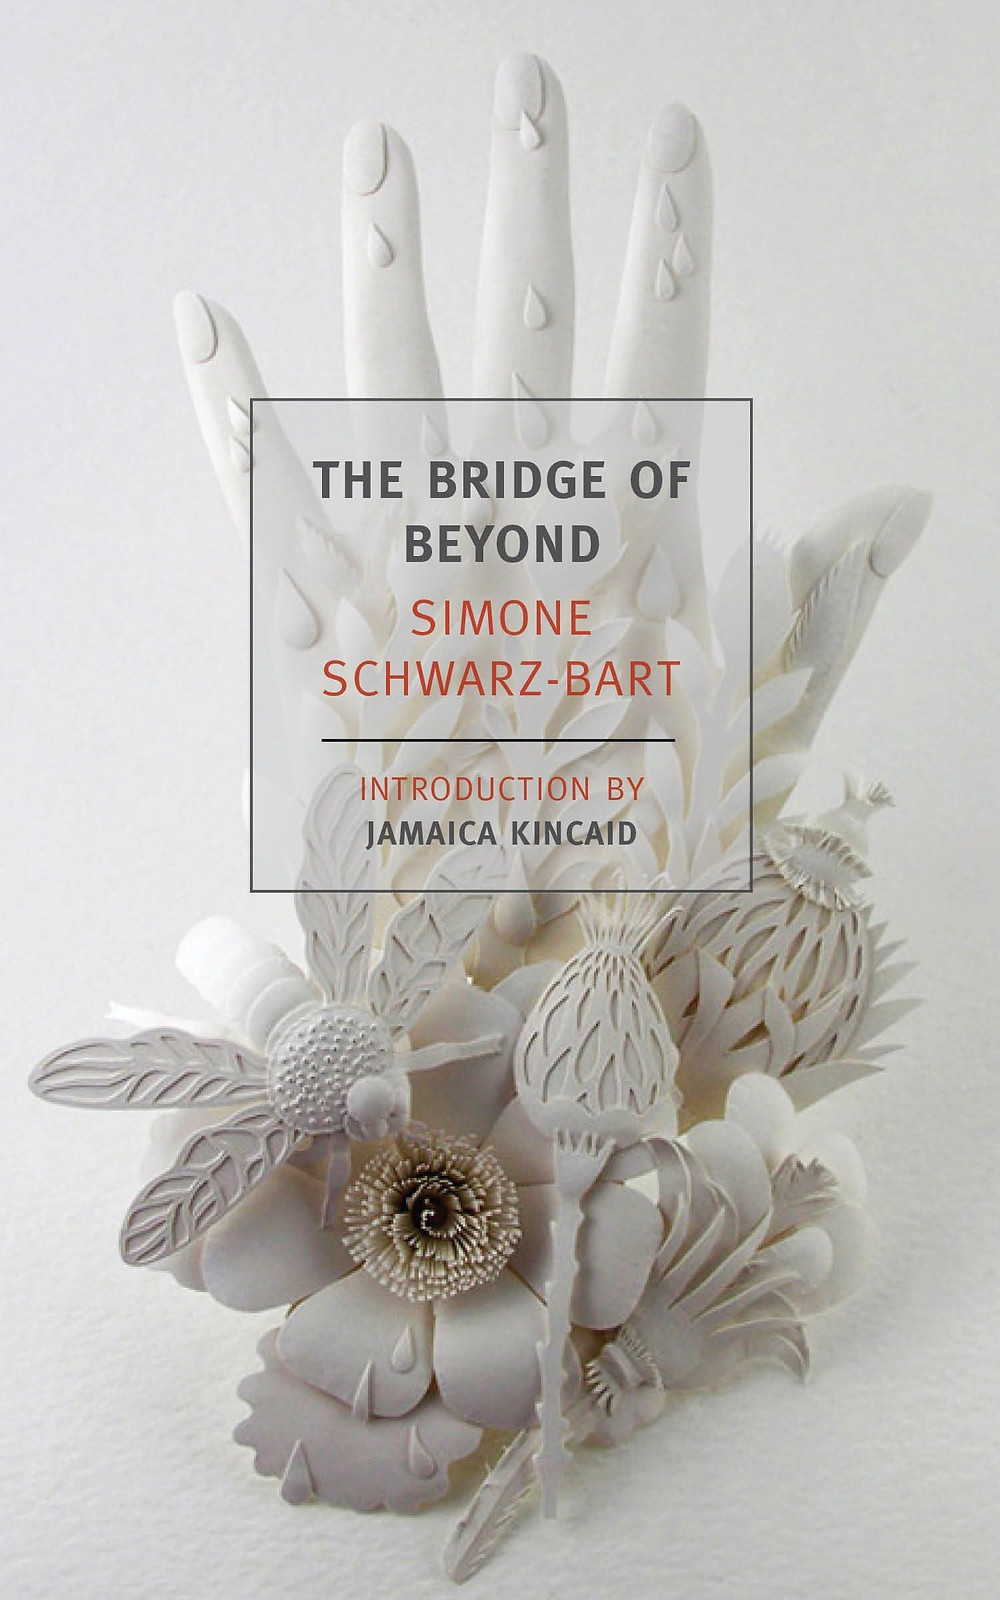 The Bridge of Beyond by Simone Schwarz-Bart translated by Barbara Bray : the book slut book reviews